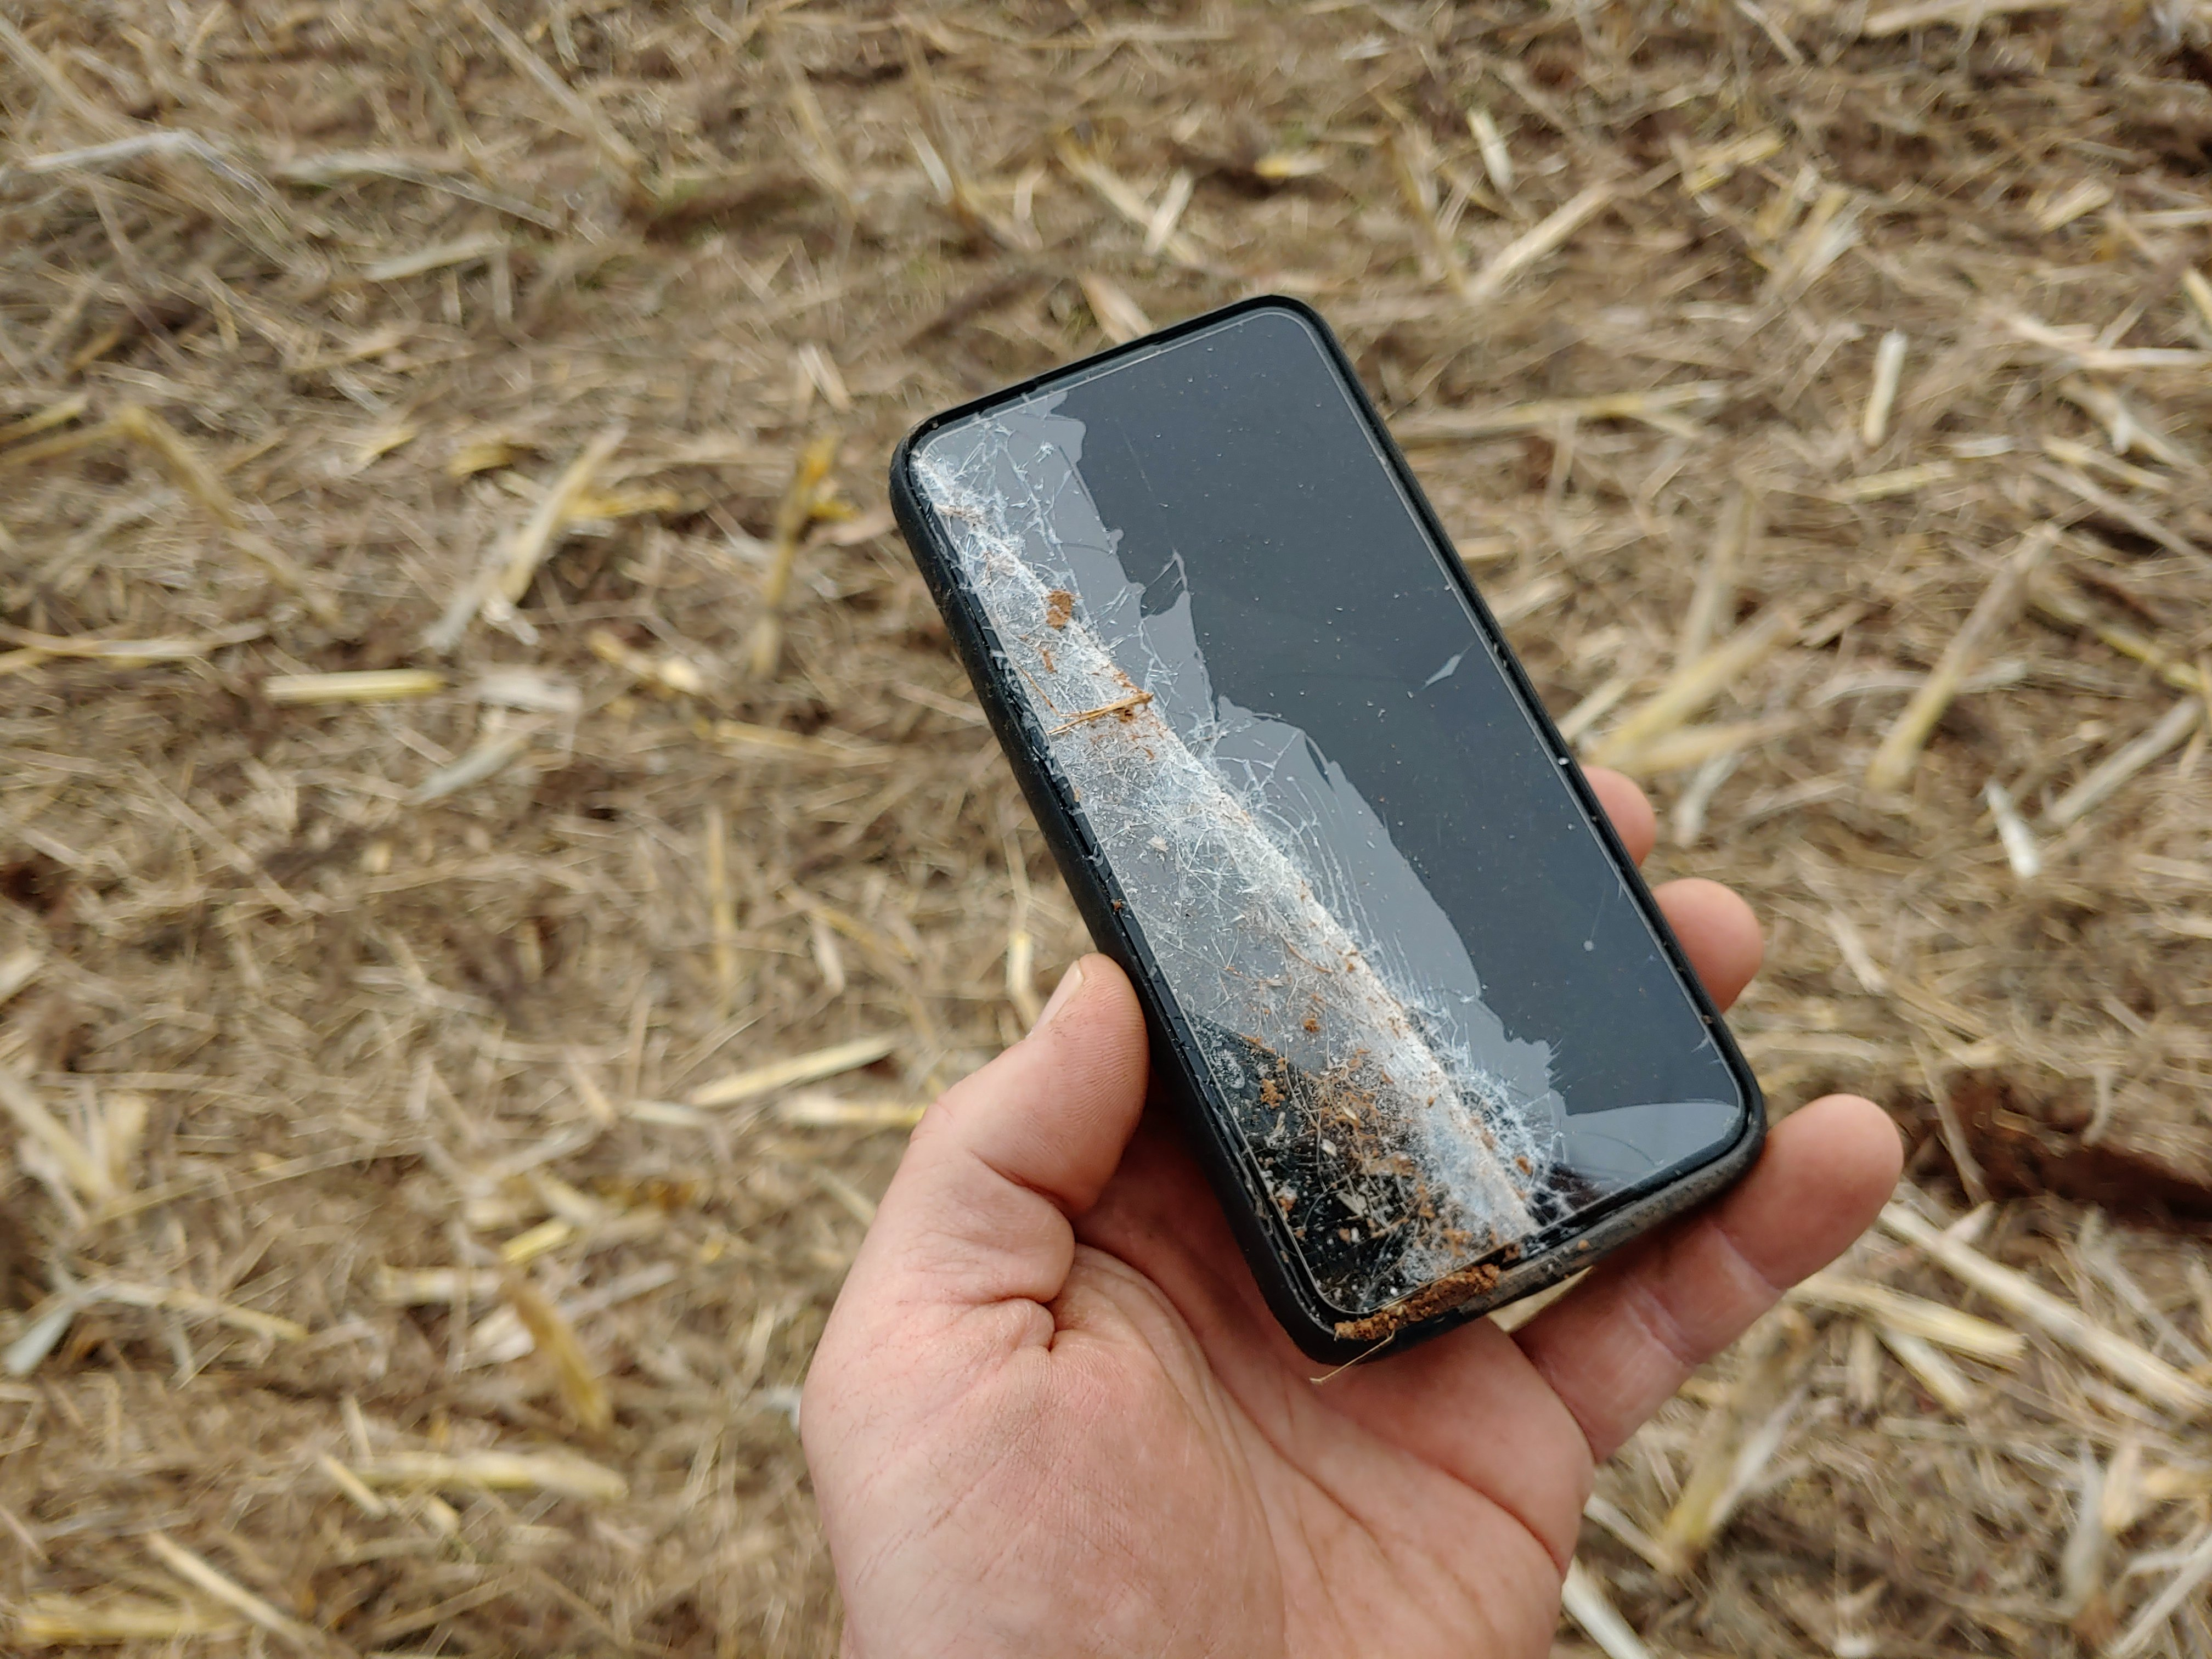 Ruined mobile phone